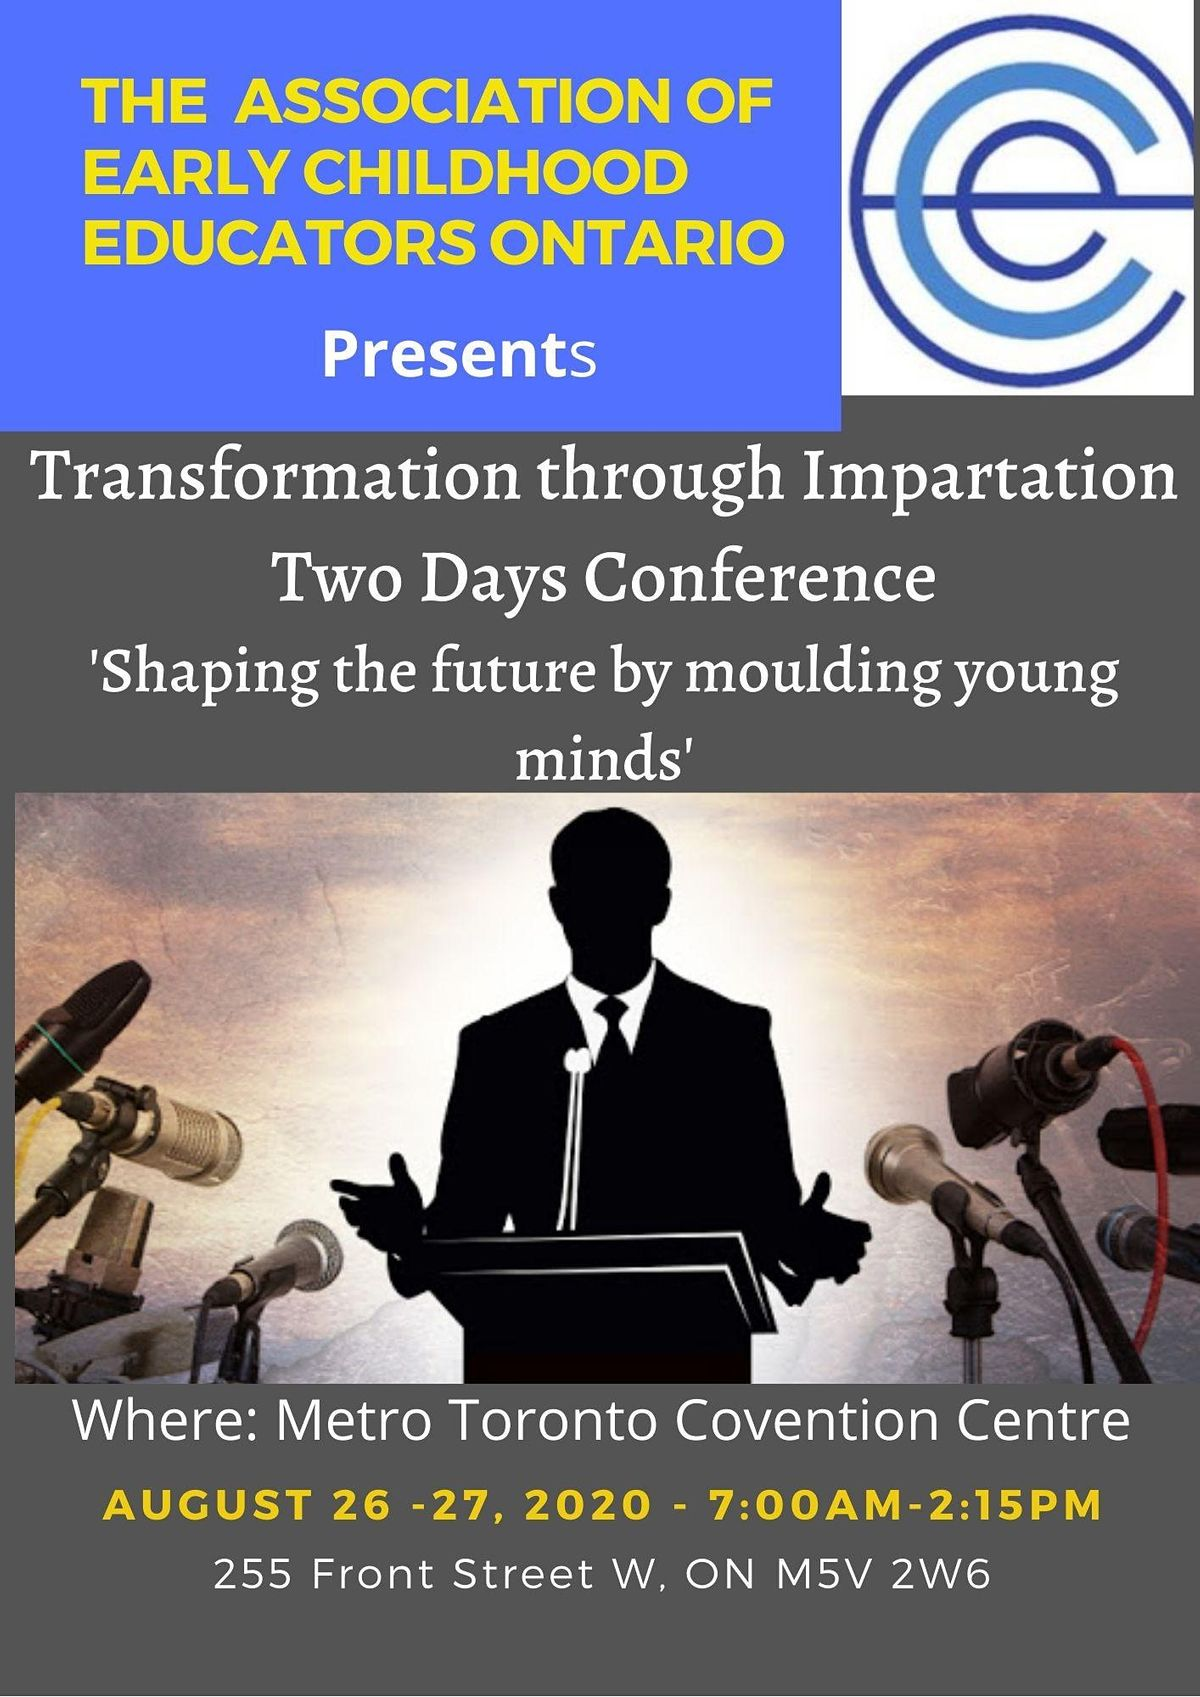 Copy of Transformation through Impartation Two Days Conference